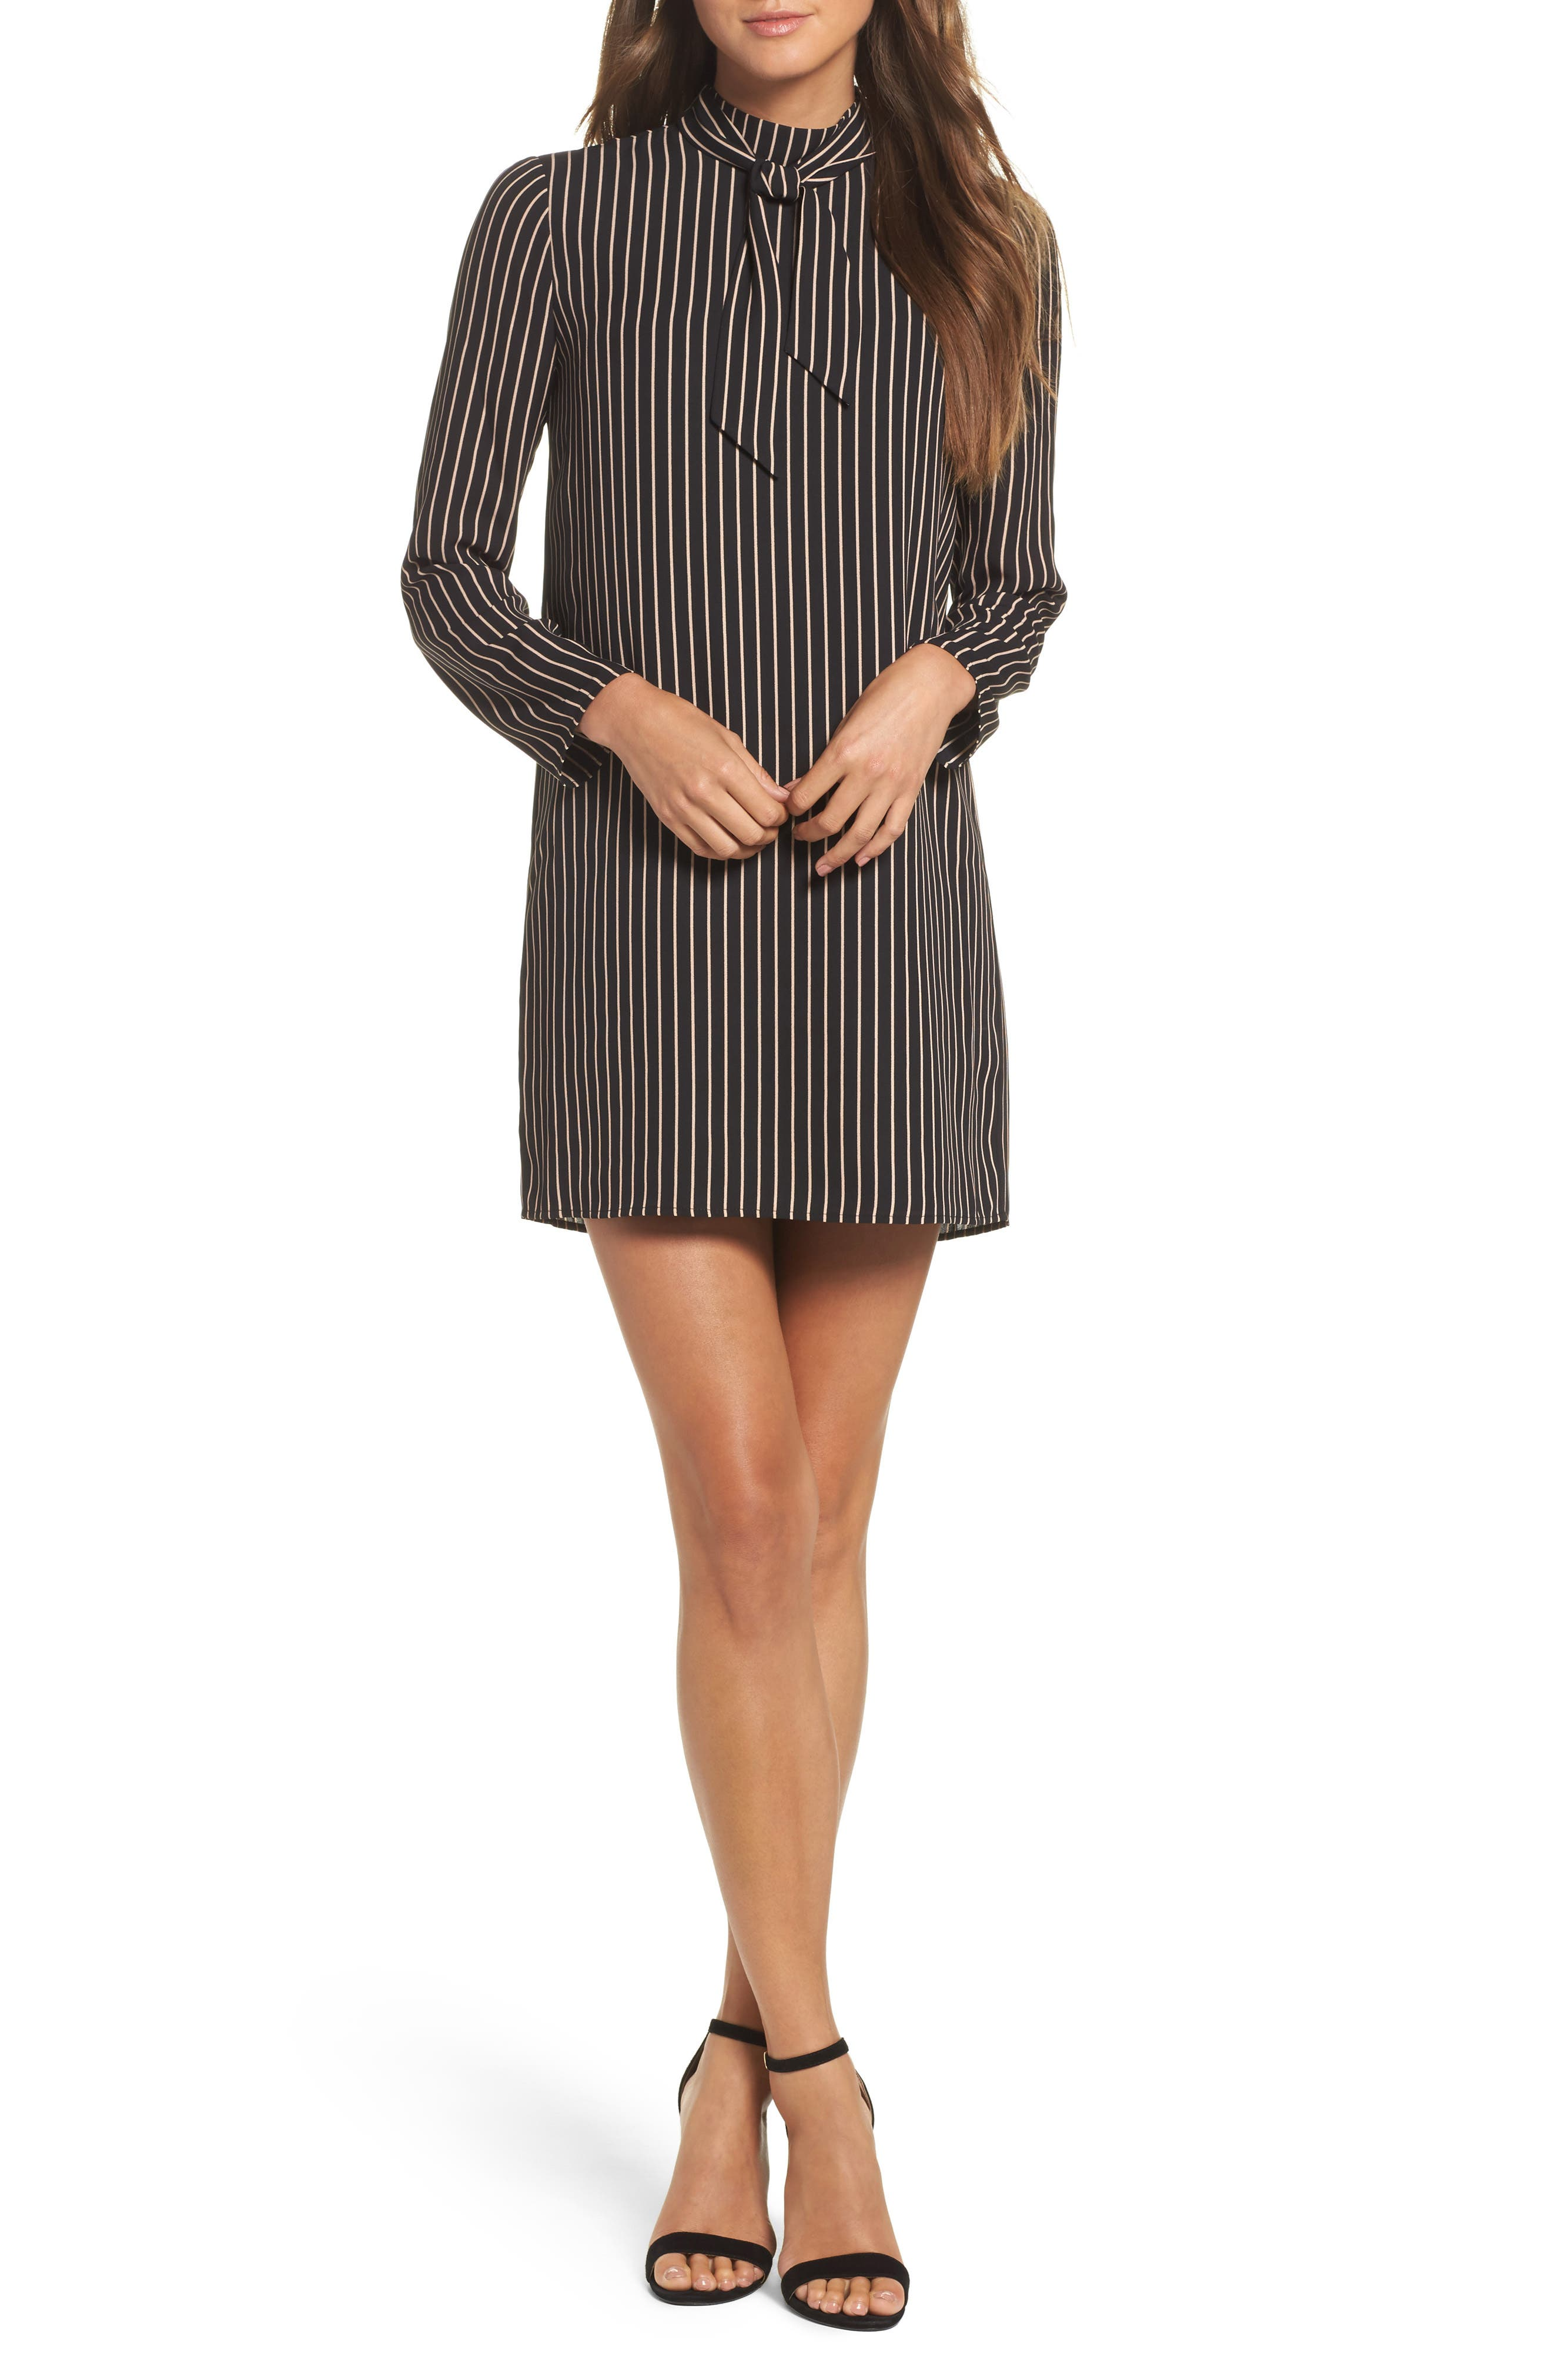 She-E-O Shift Dress,                             Main thumbnail 1, color,                             Black/ Tan Stripe